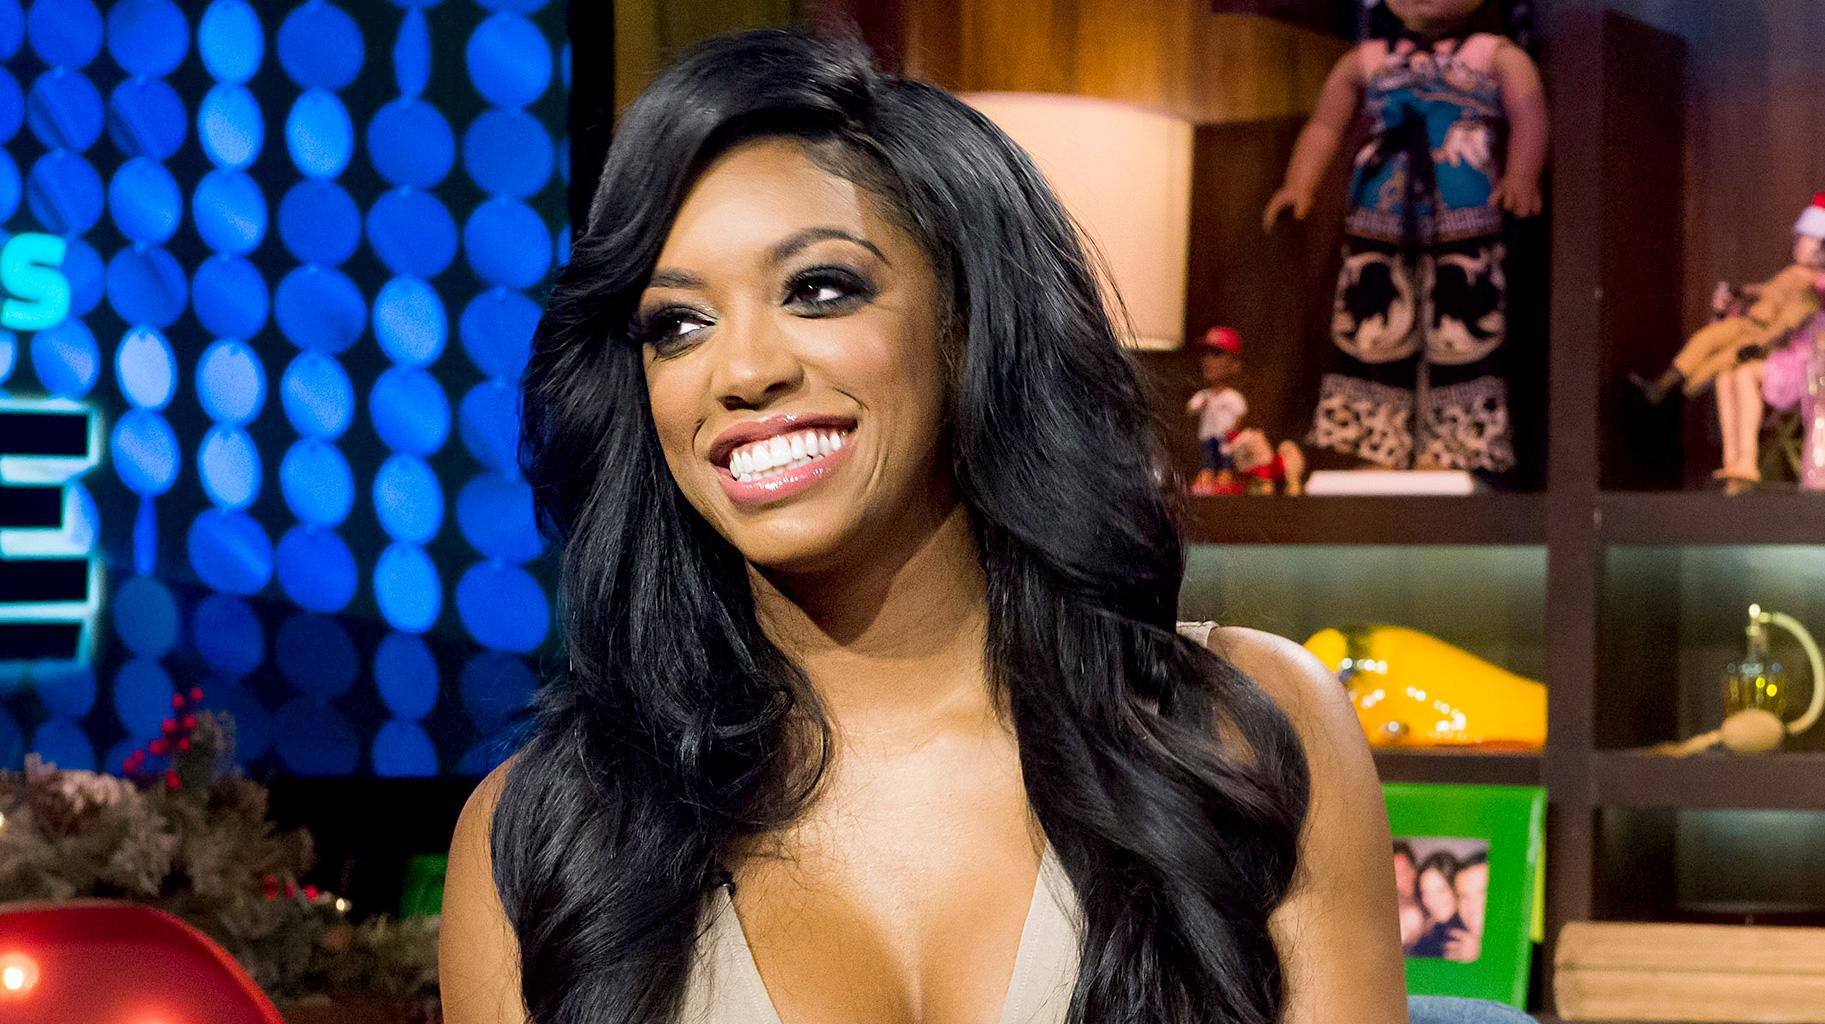 Porsha Williams' Daughter Pilar Jhena Looks Like She Does Not Want To Leave Greece In The Latest Pics